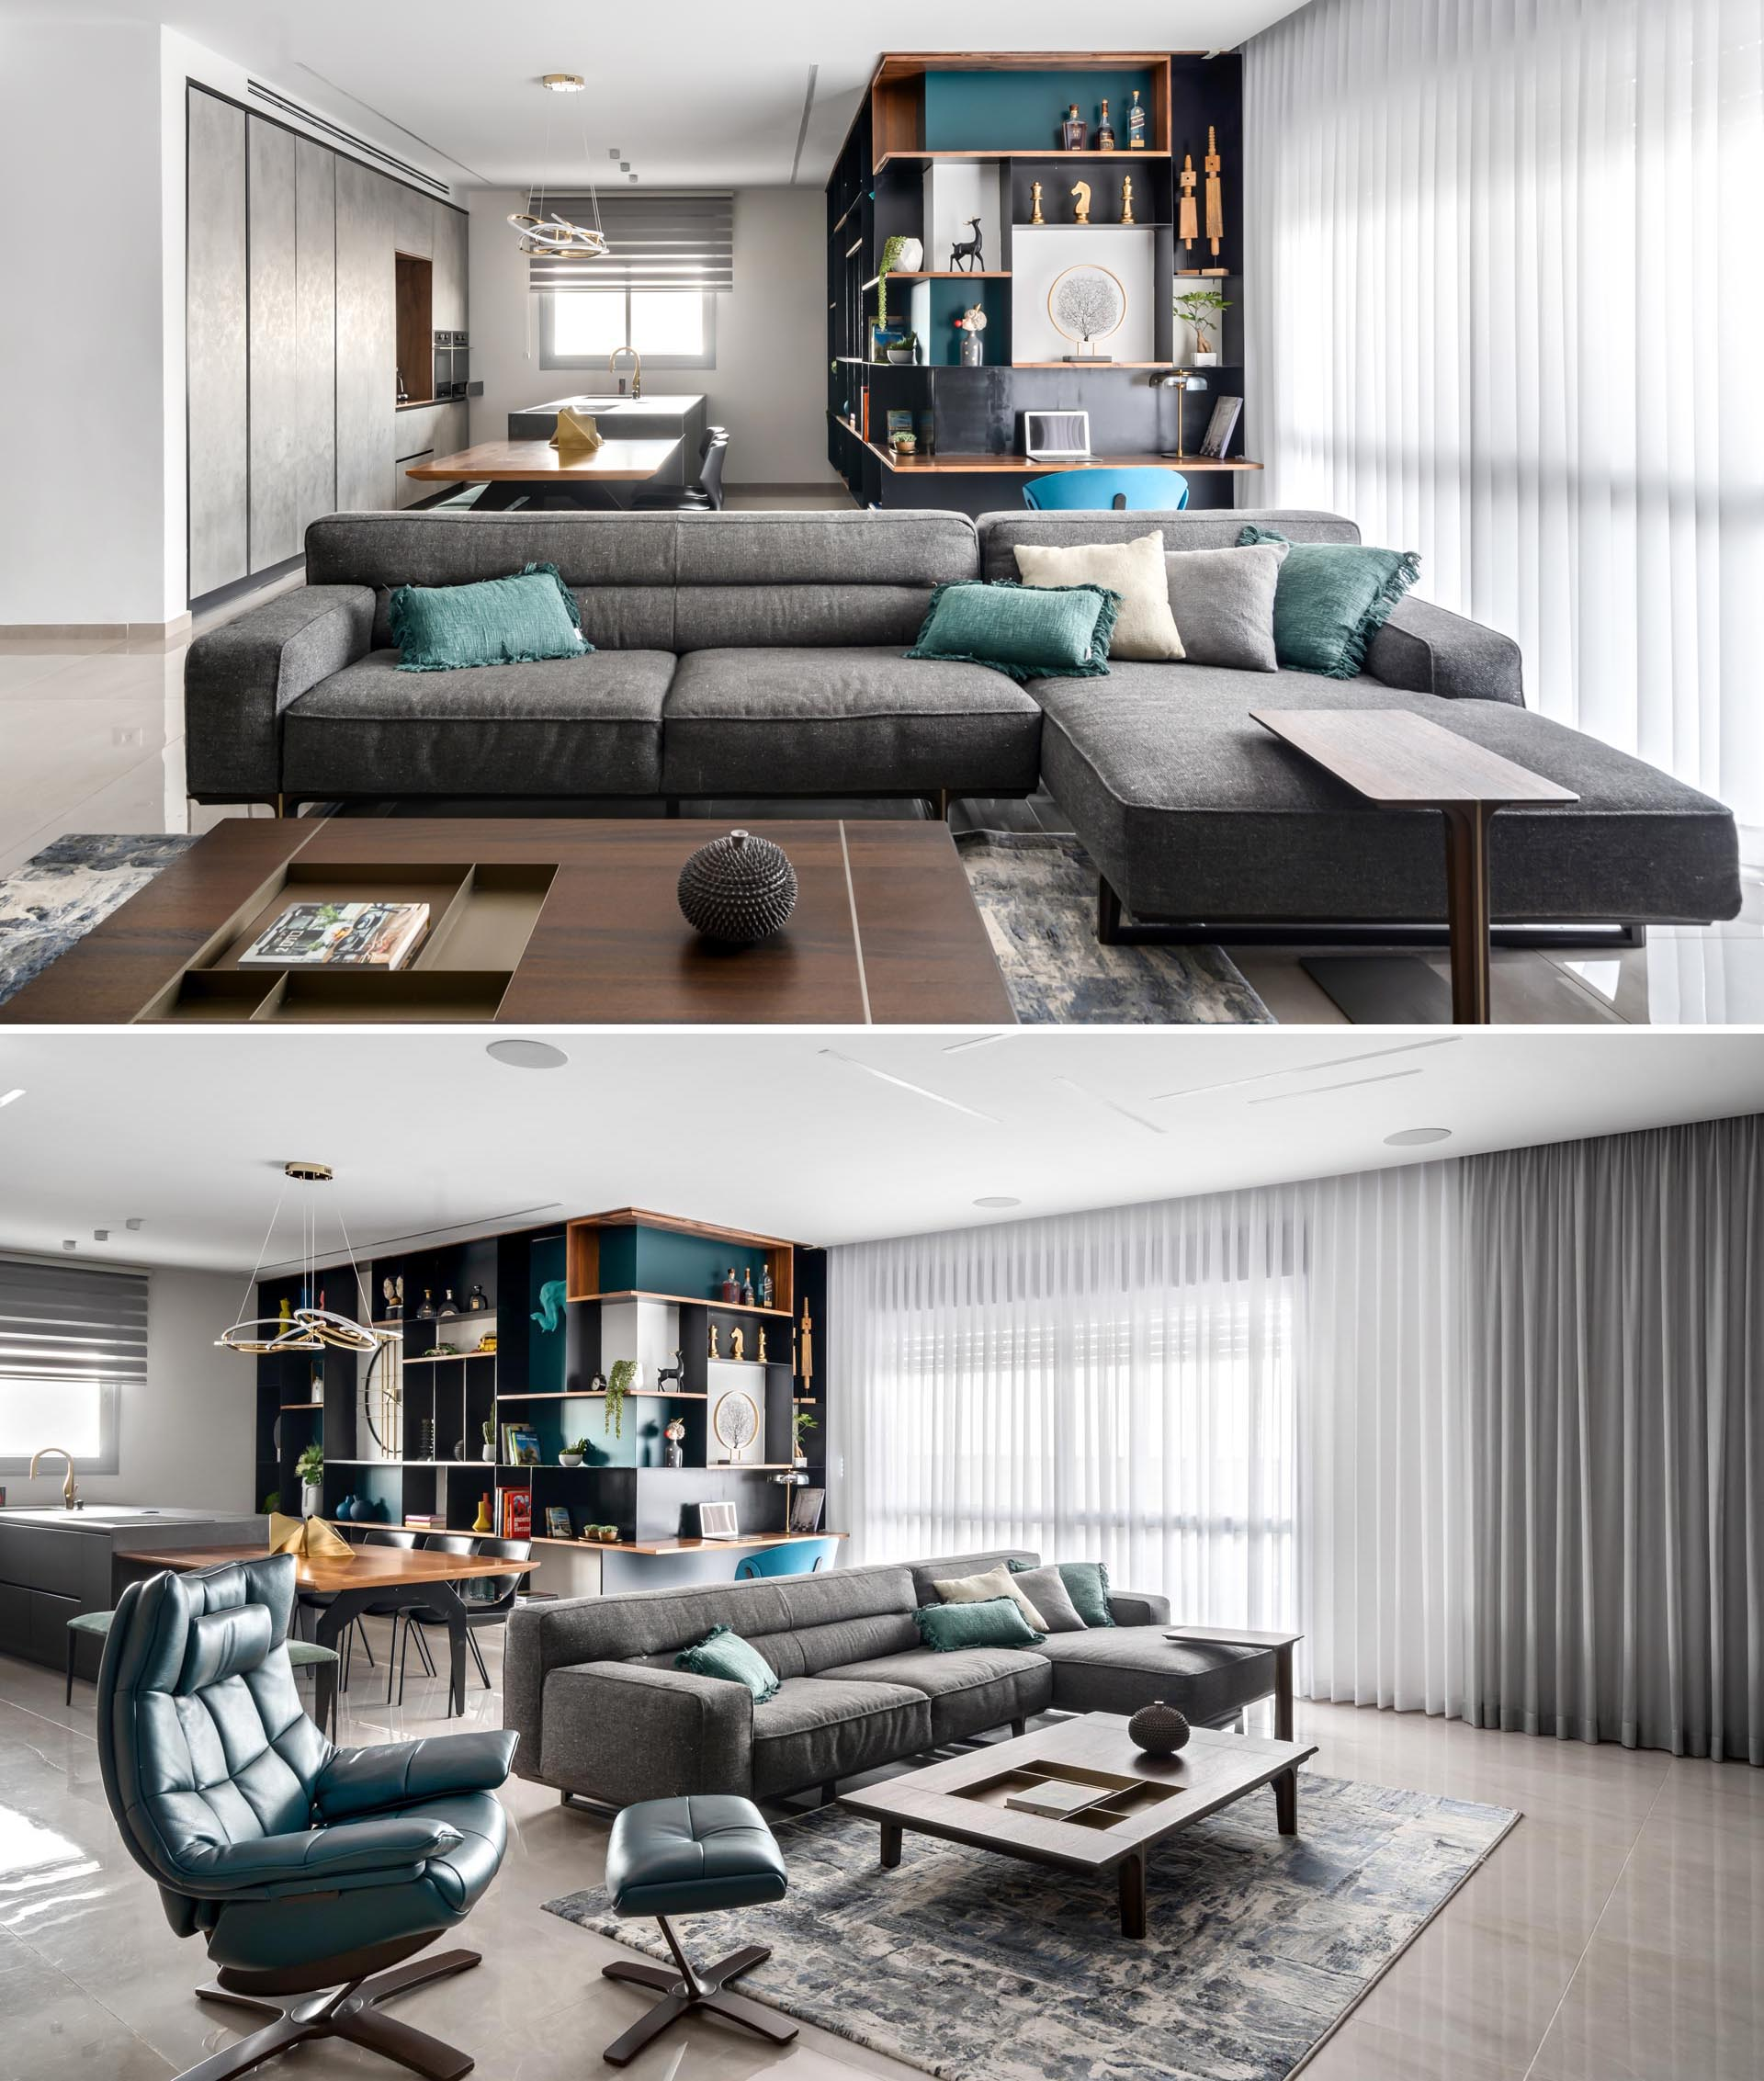 One of the key design elements in this apartment is the inclusion of an entire wall that's filled with steel and wood shelving, and has pop of turquoise adding a colorful accent to the open plan interior.